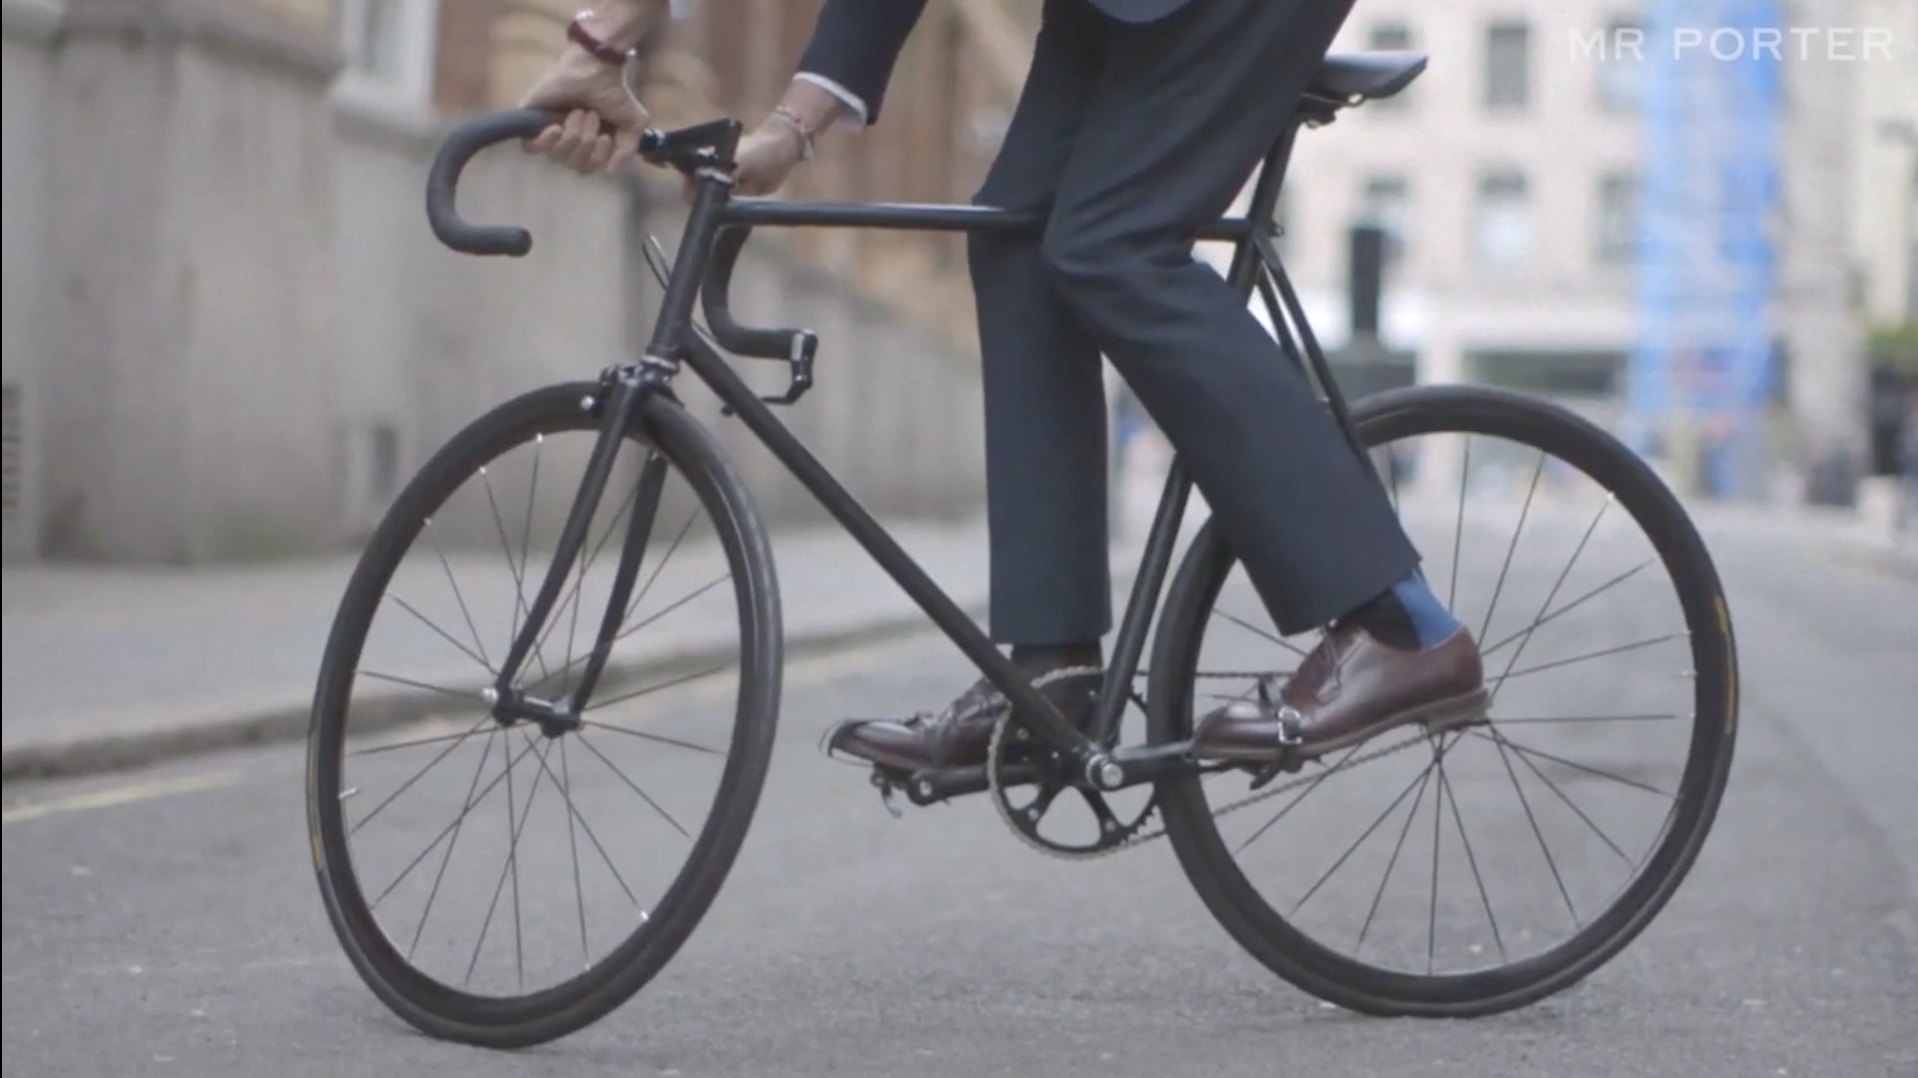 Fashion Designer In Blue Suit And Brown Leather Shoes Riding Custom Carbon Racing Bike On London City Street